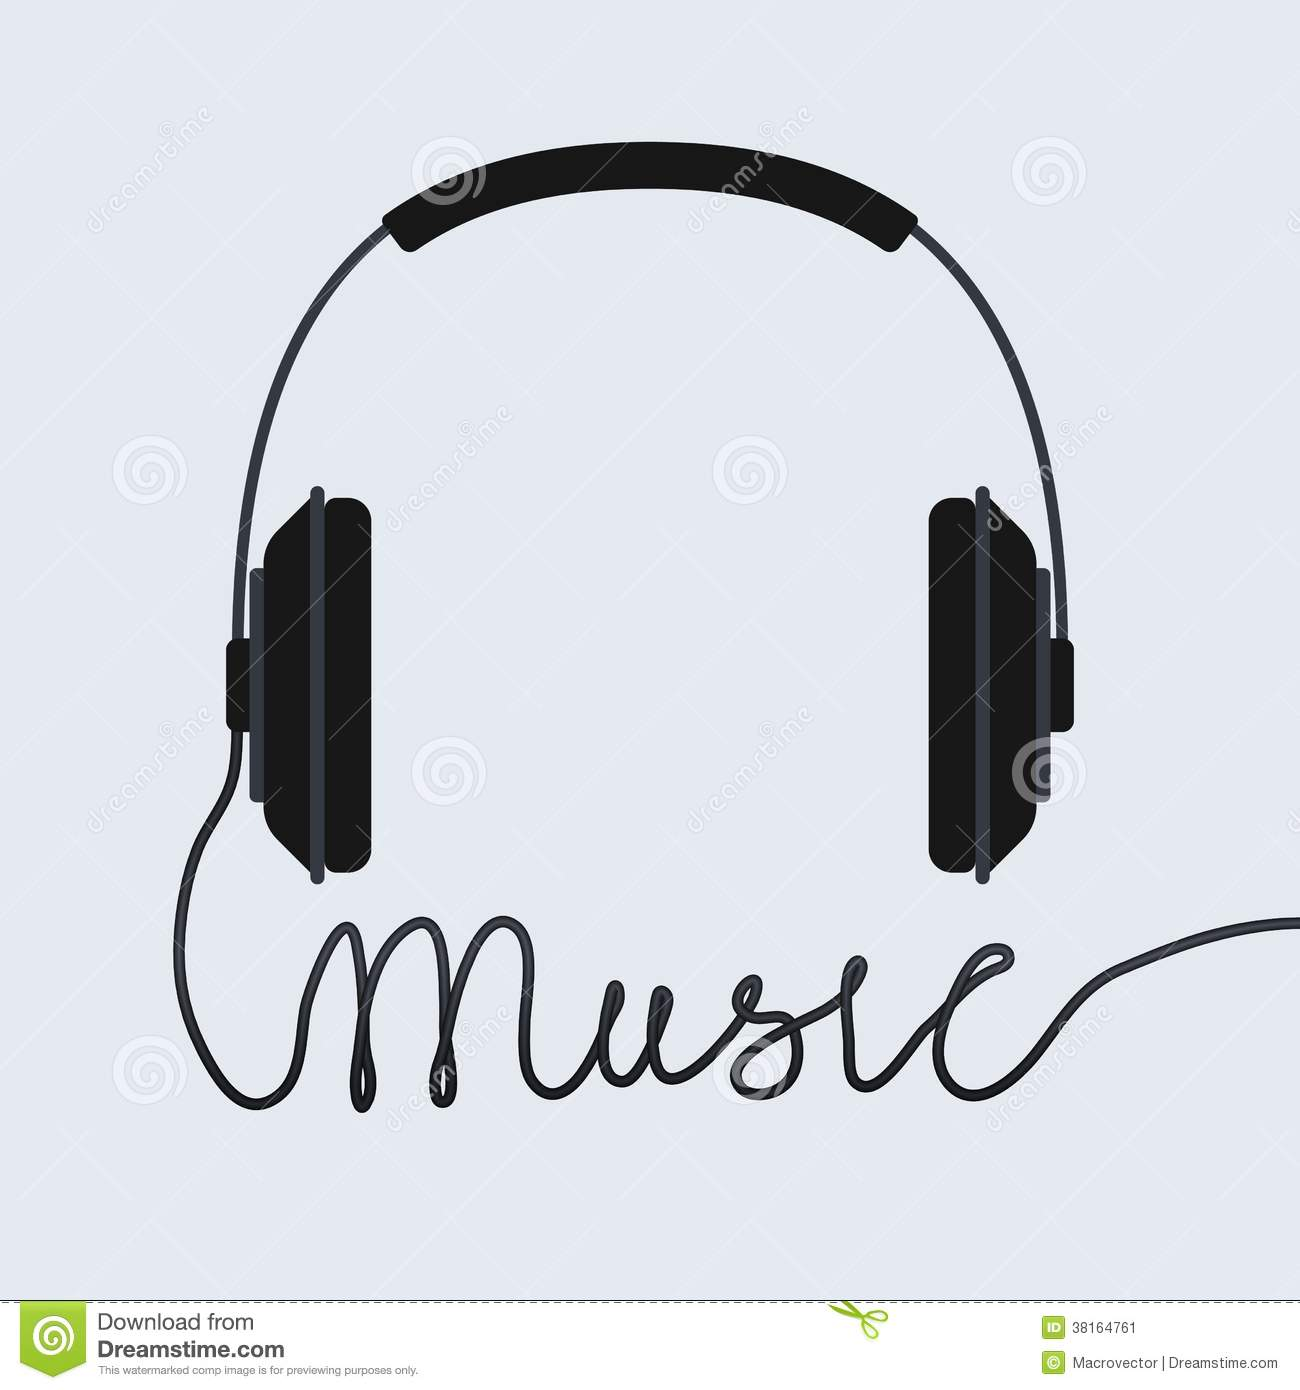 More similar stock images of ` Music headphone icon `